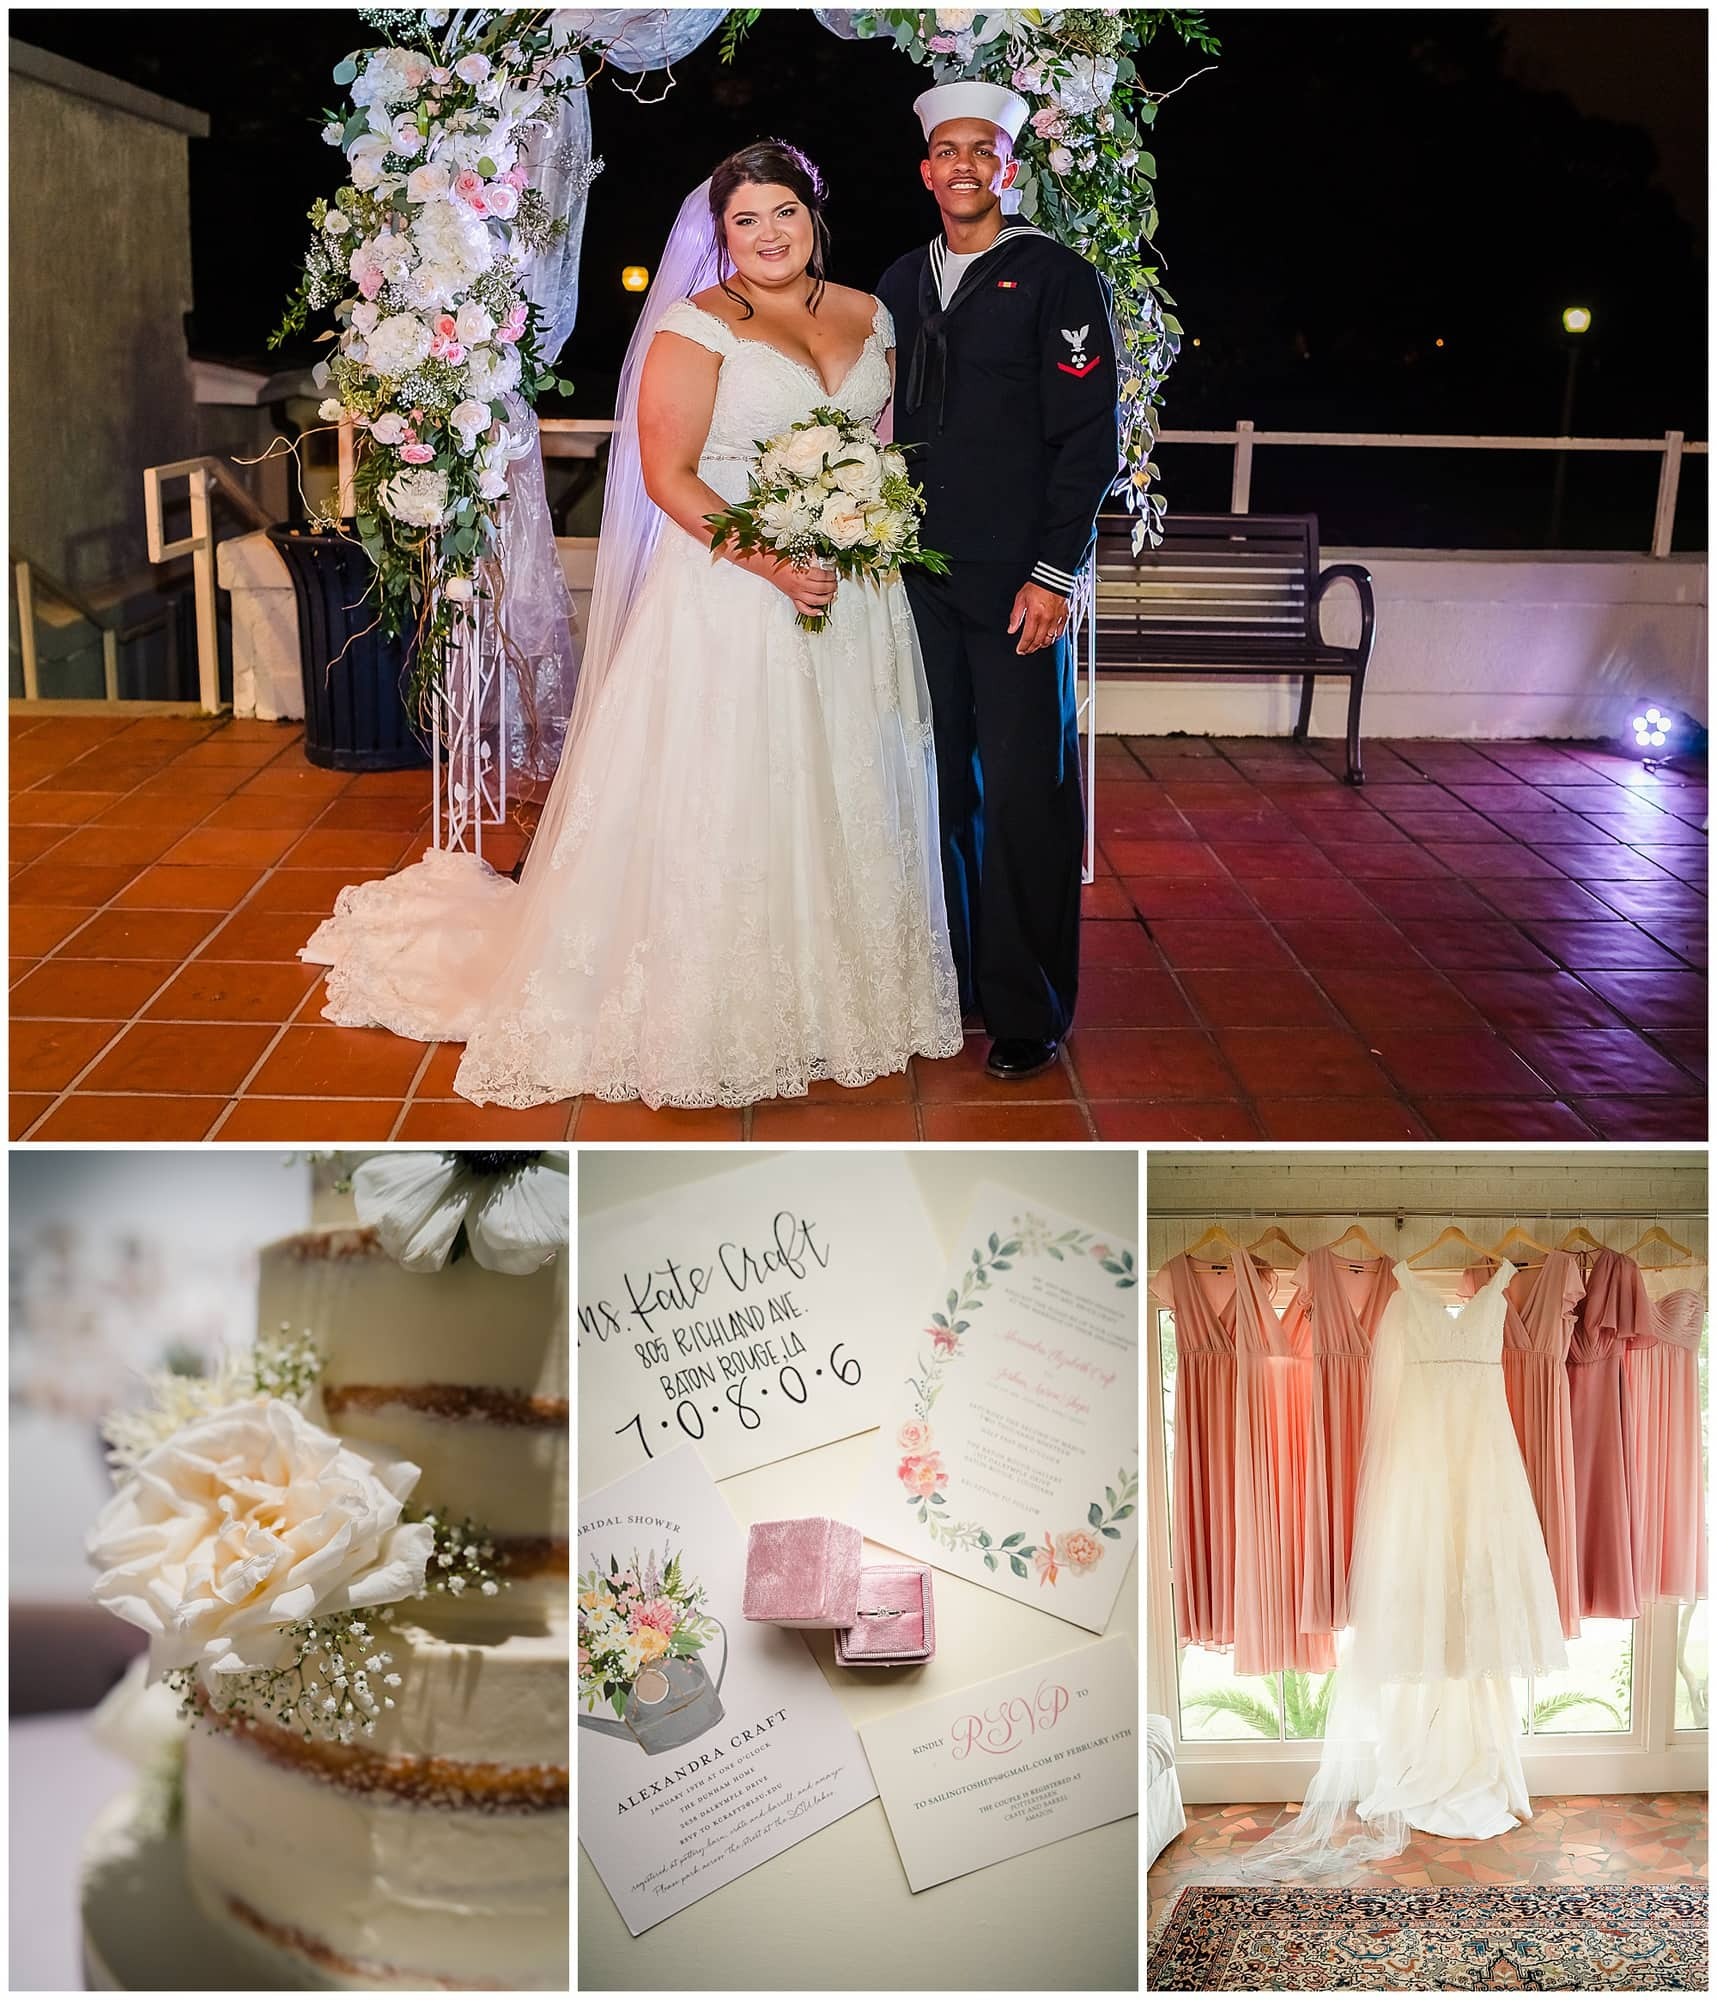 collage of couple posing and wedding details at Baton Rouge gallery venue